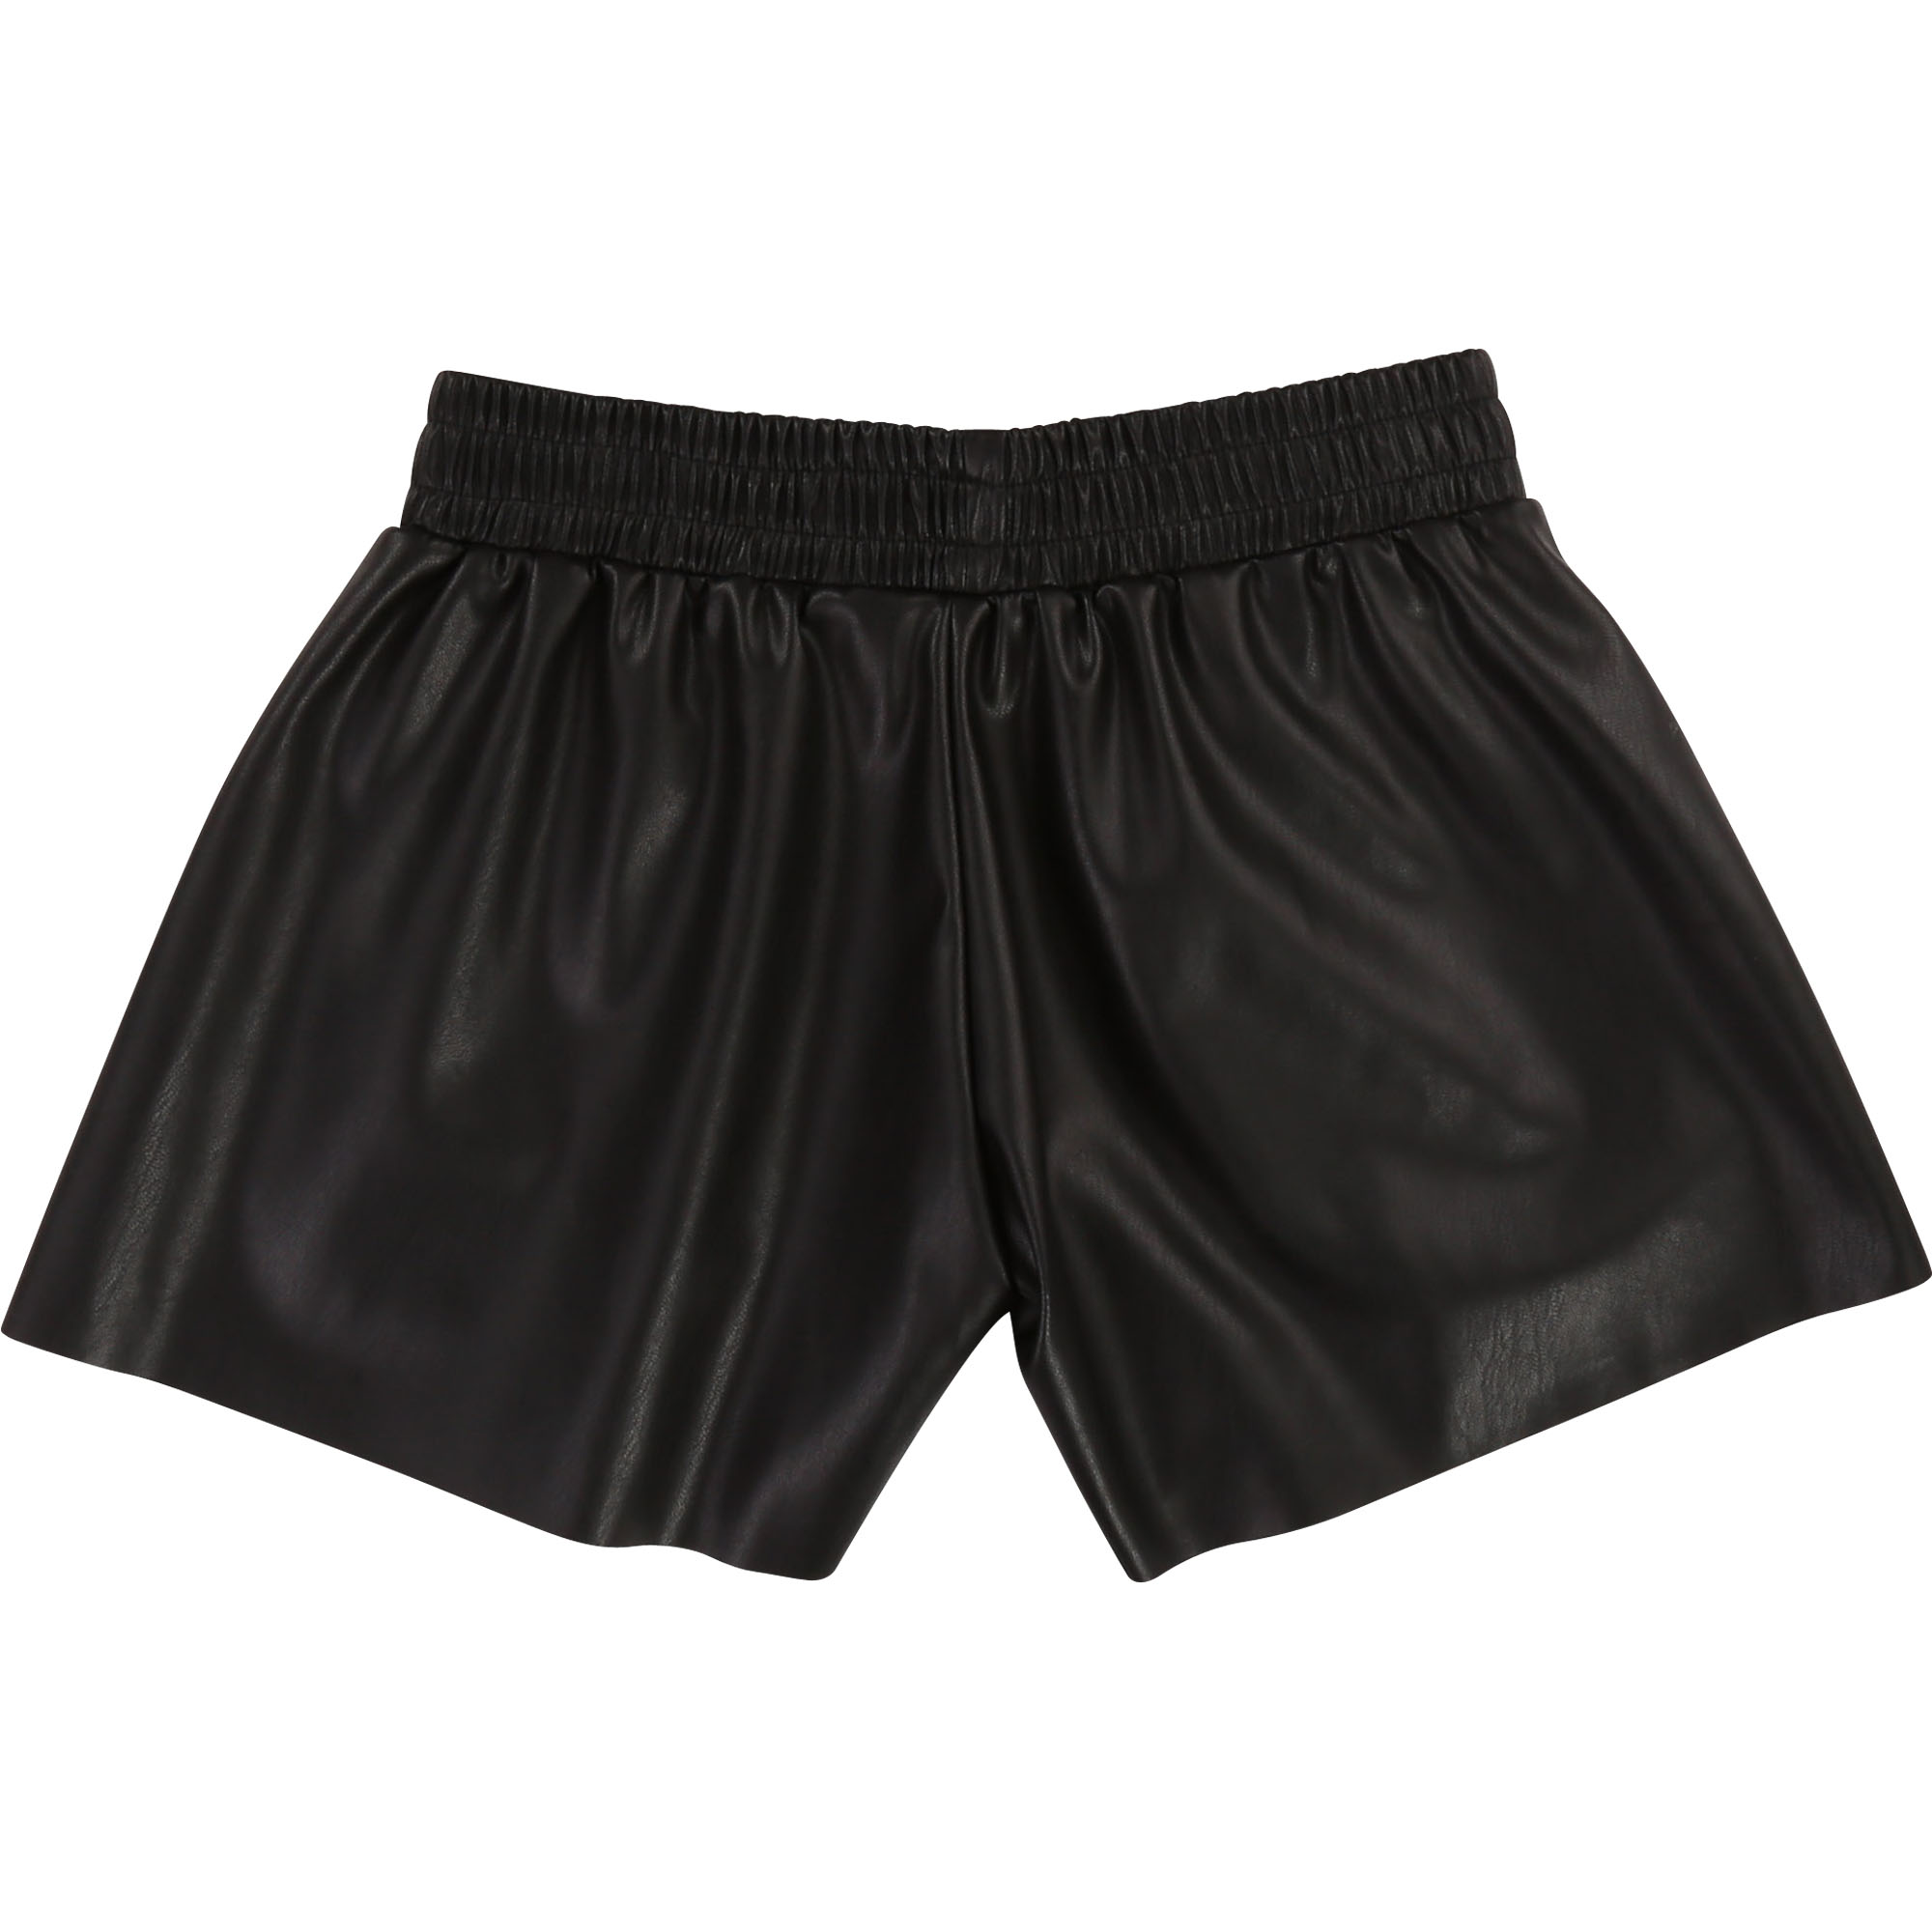 Imitation leather shorts ZADIG & VOLTAIRE for GIRL